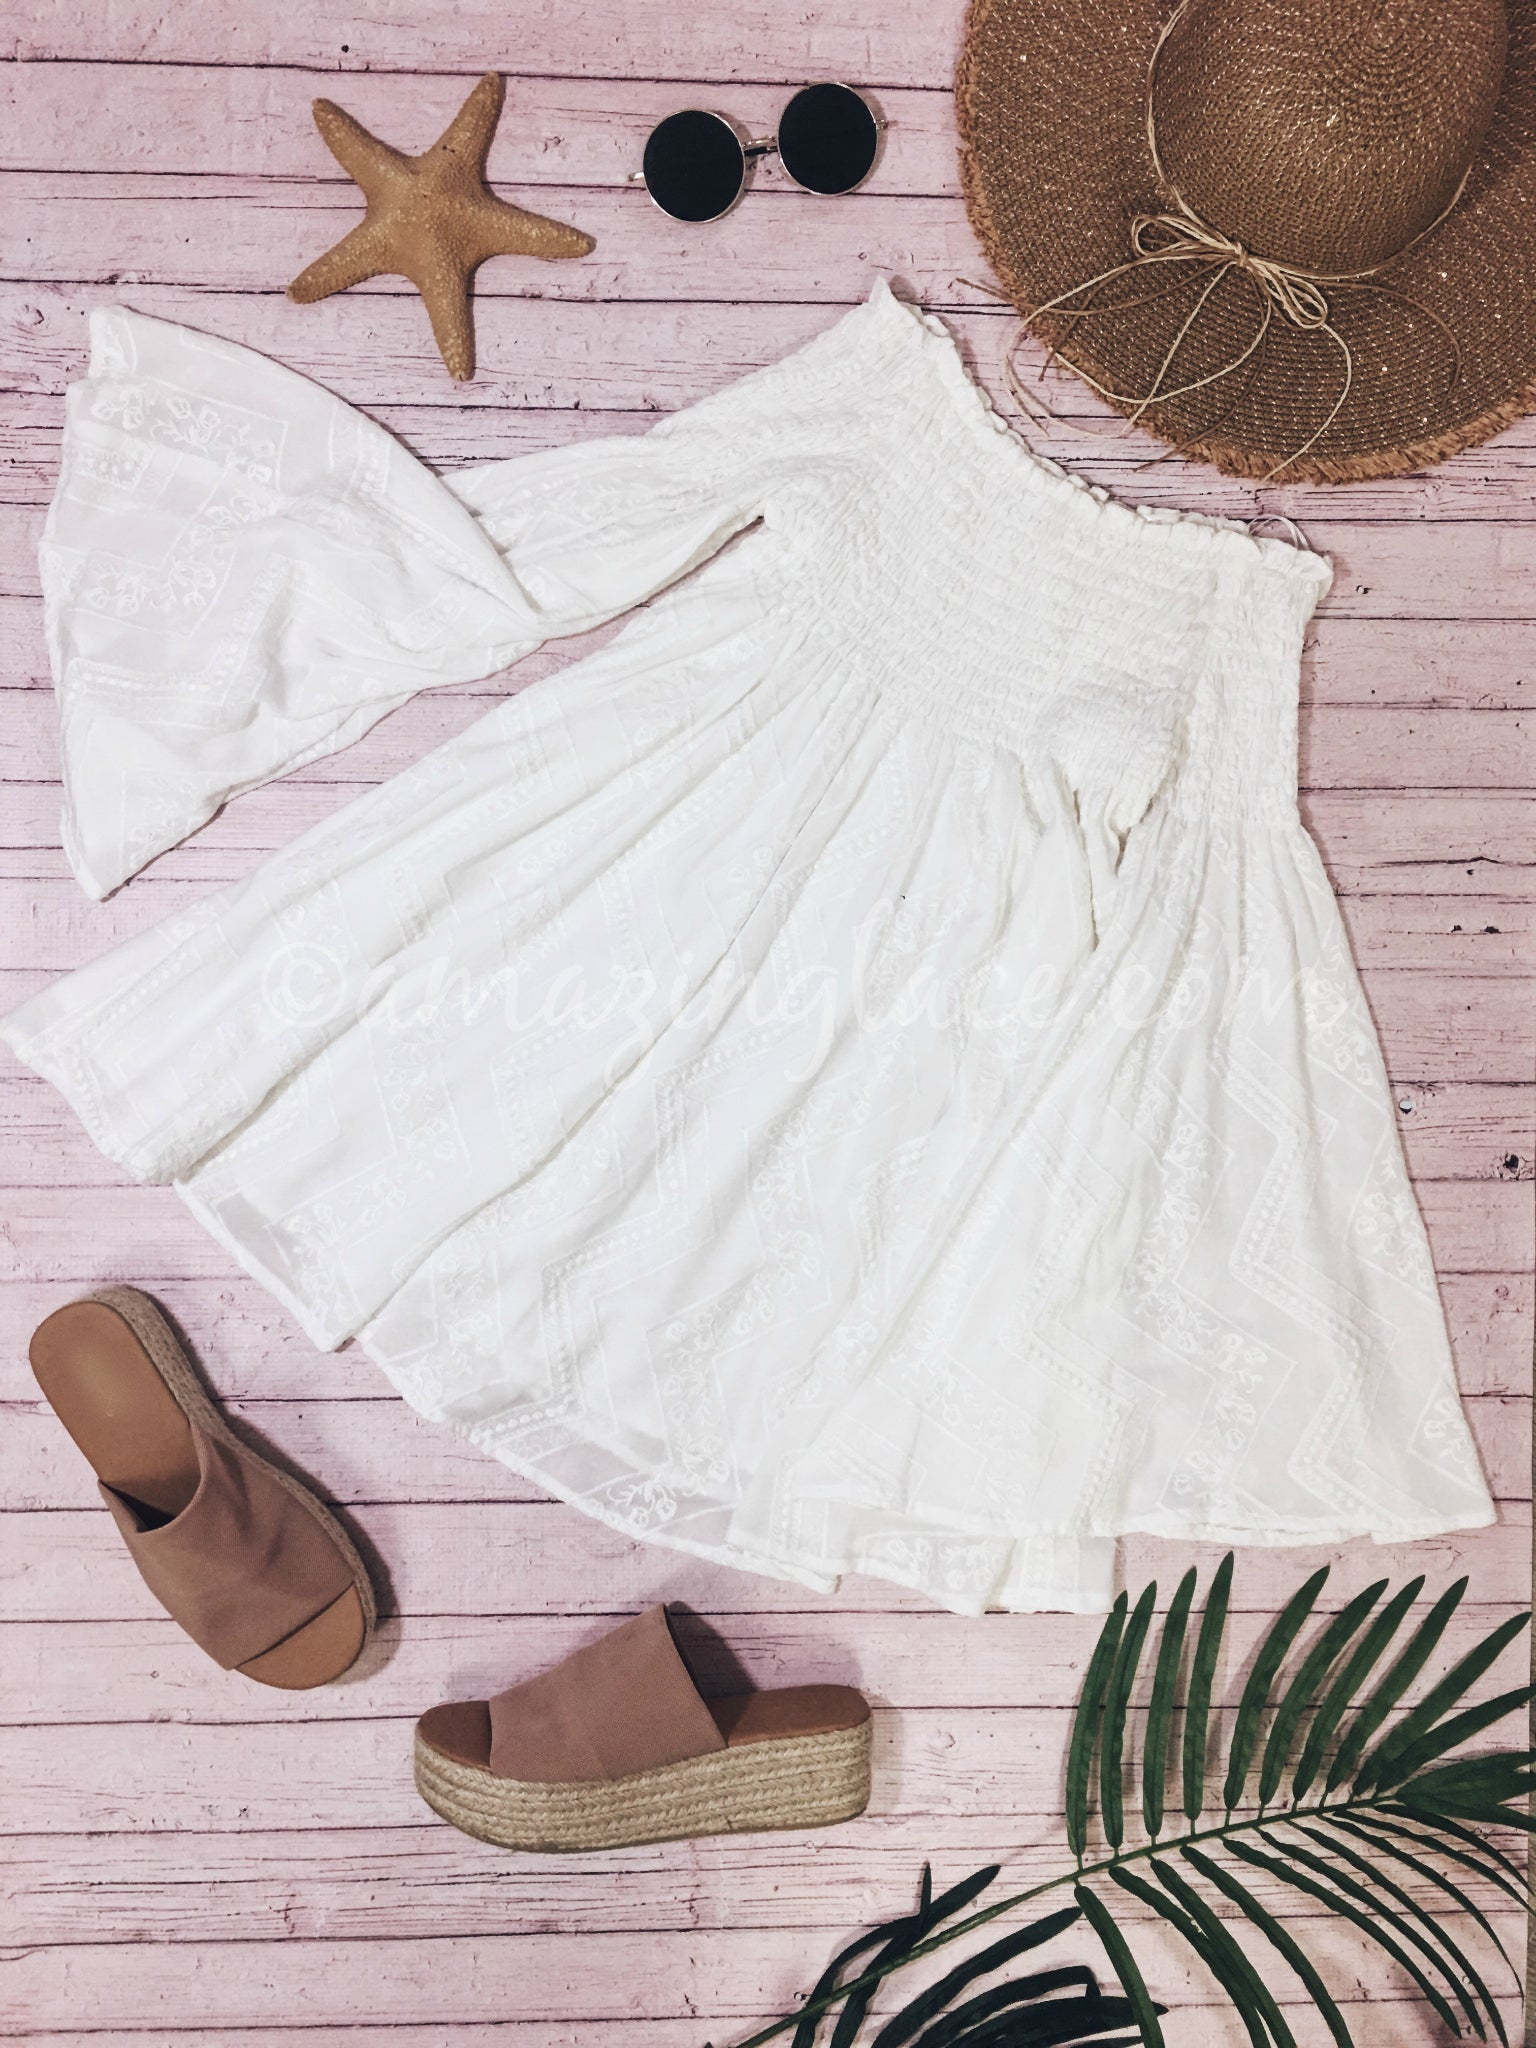 WHITE DRESS AND ESPADRILLES OUTFIT